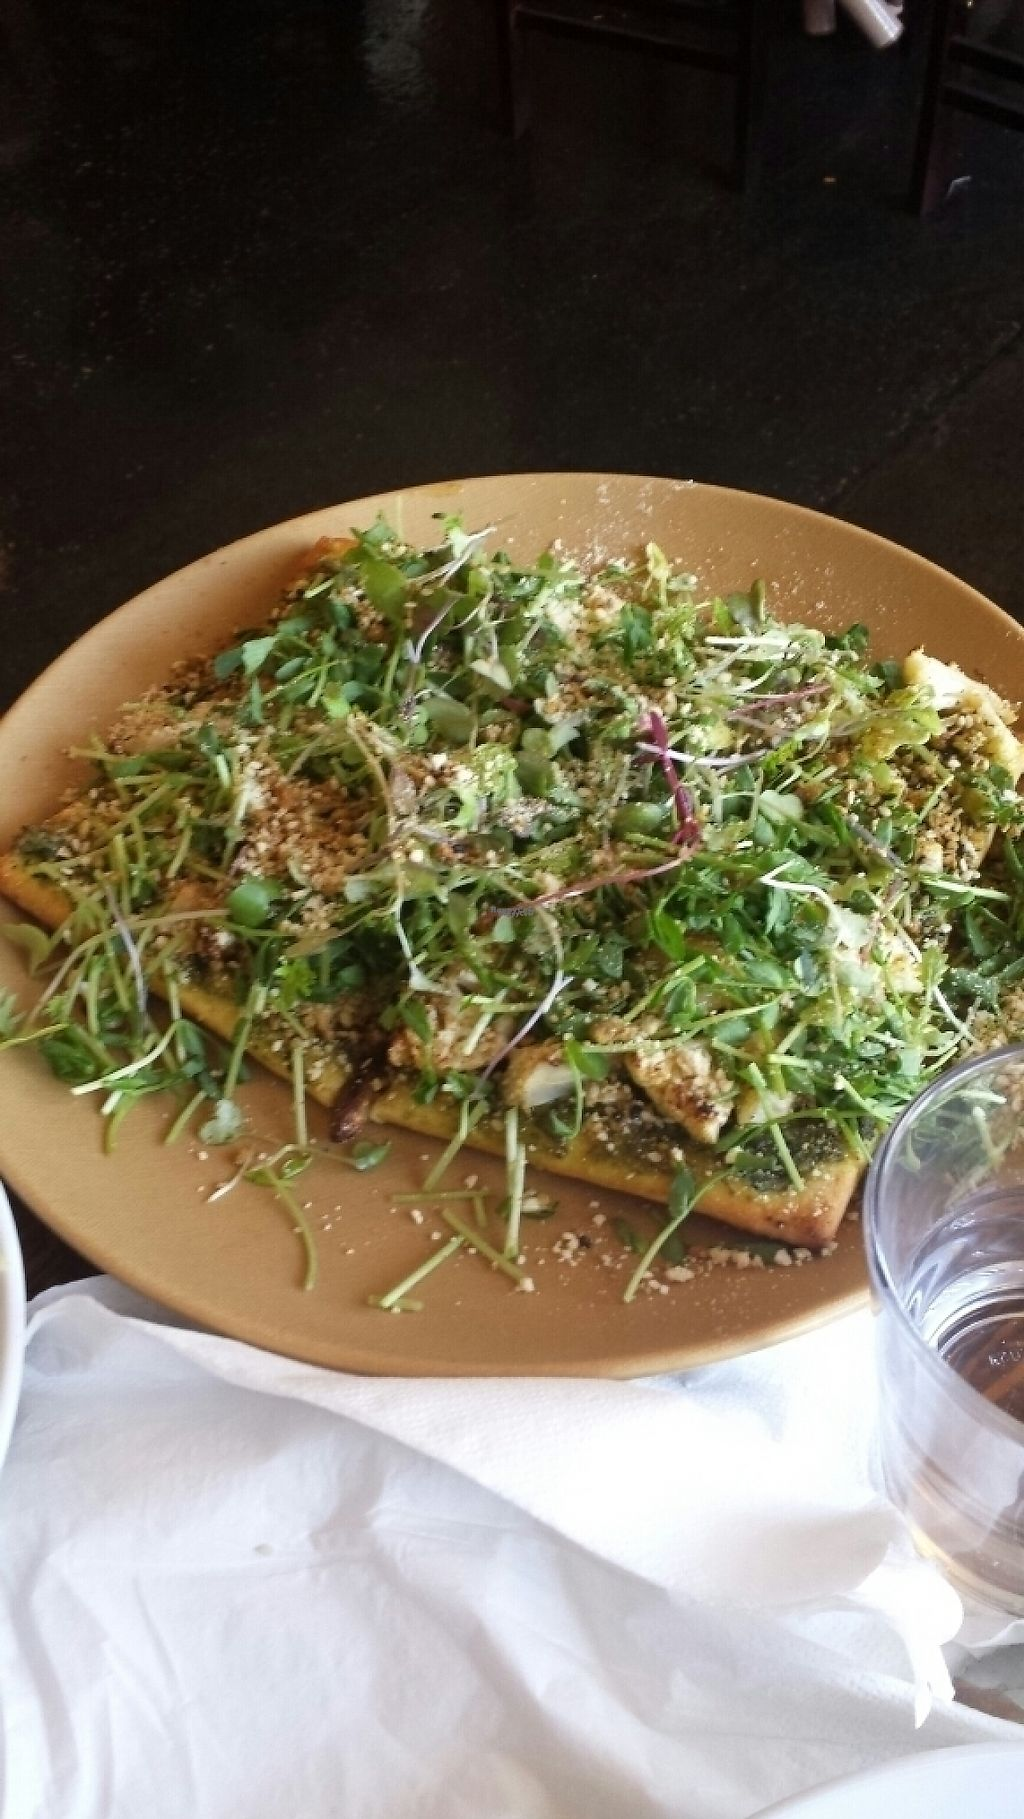 """Photo of Fruits and Roots  by <a href=""""/members/profile/drubot"""">drubot</a> <br/>Cauliflower and garlic flatbread  <br/> February 9, 2017  - <a href='/contact/abuse/image/55794/224628'>Report</a>"""